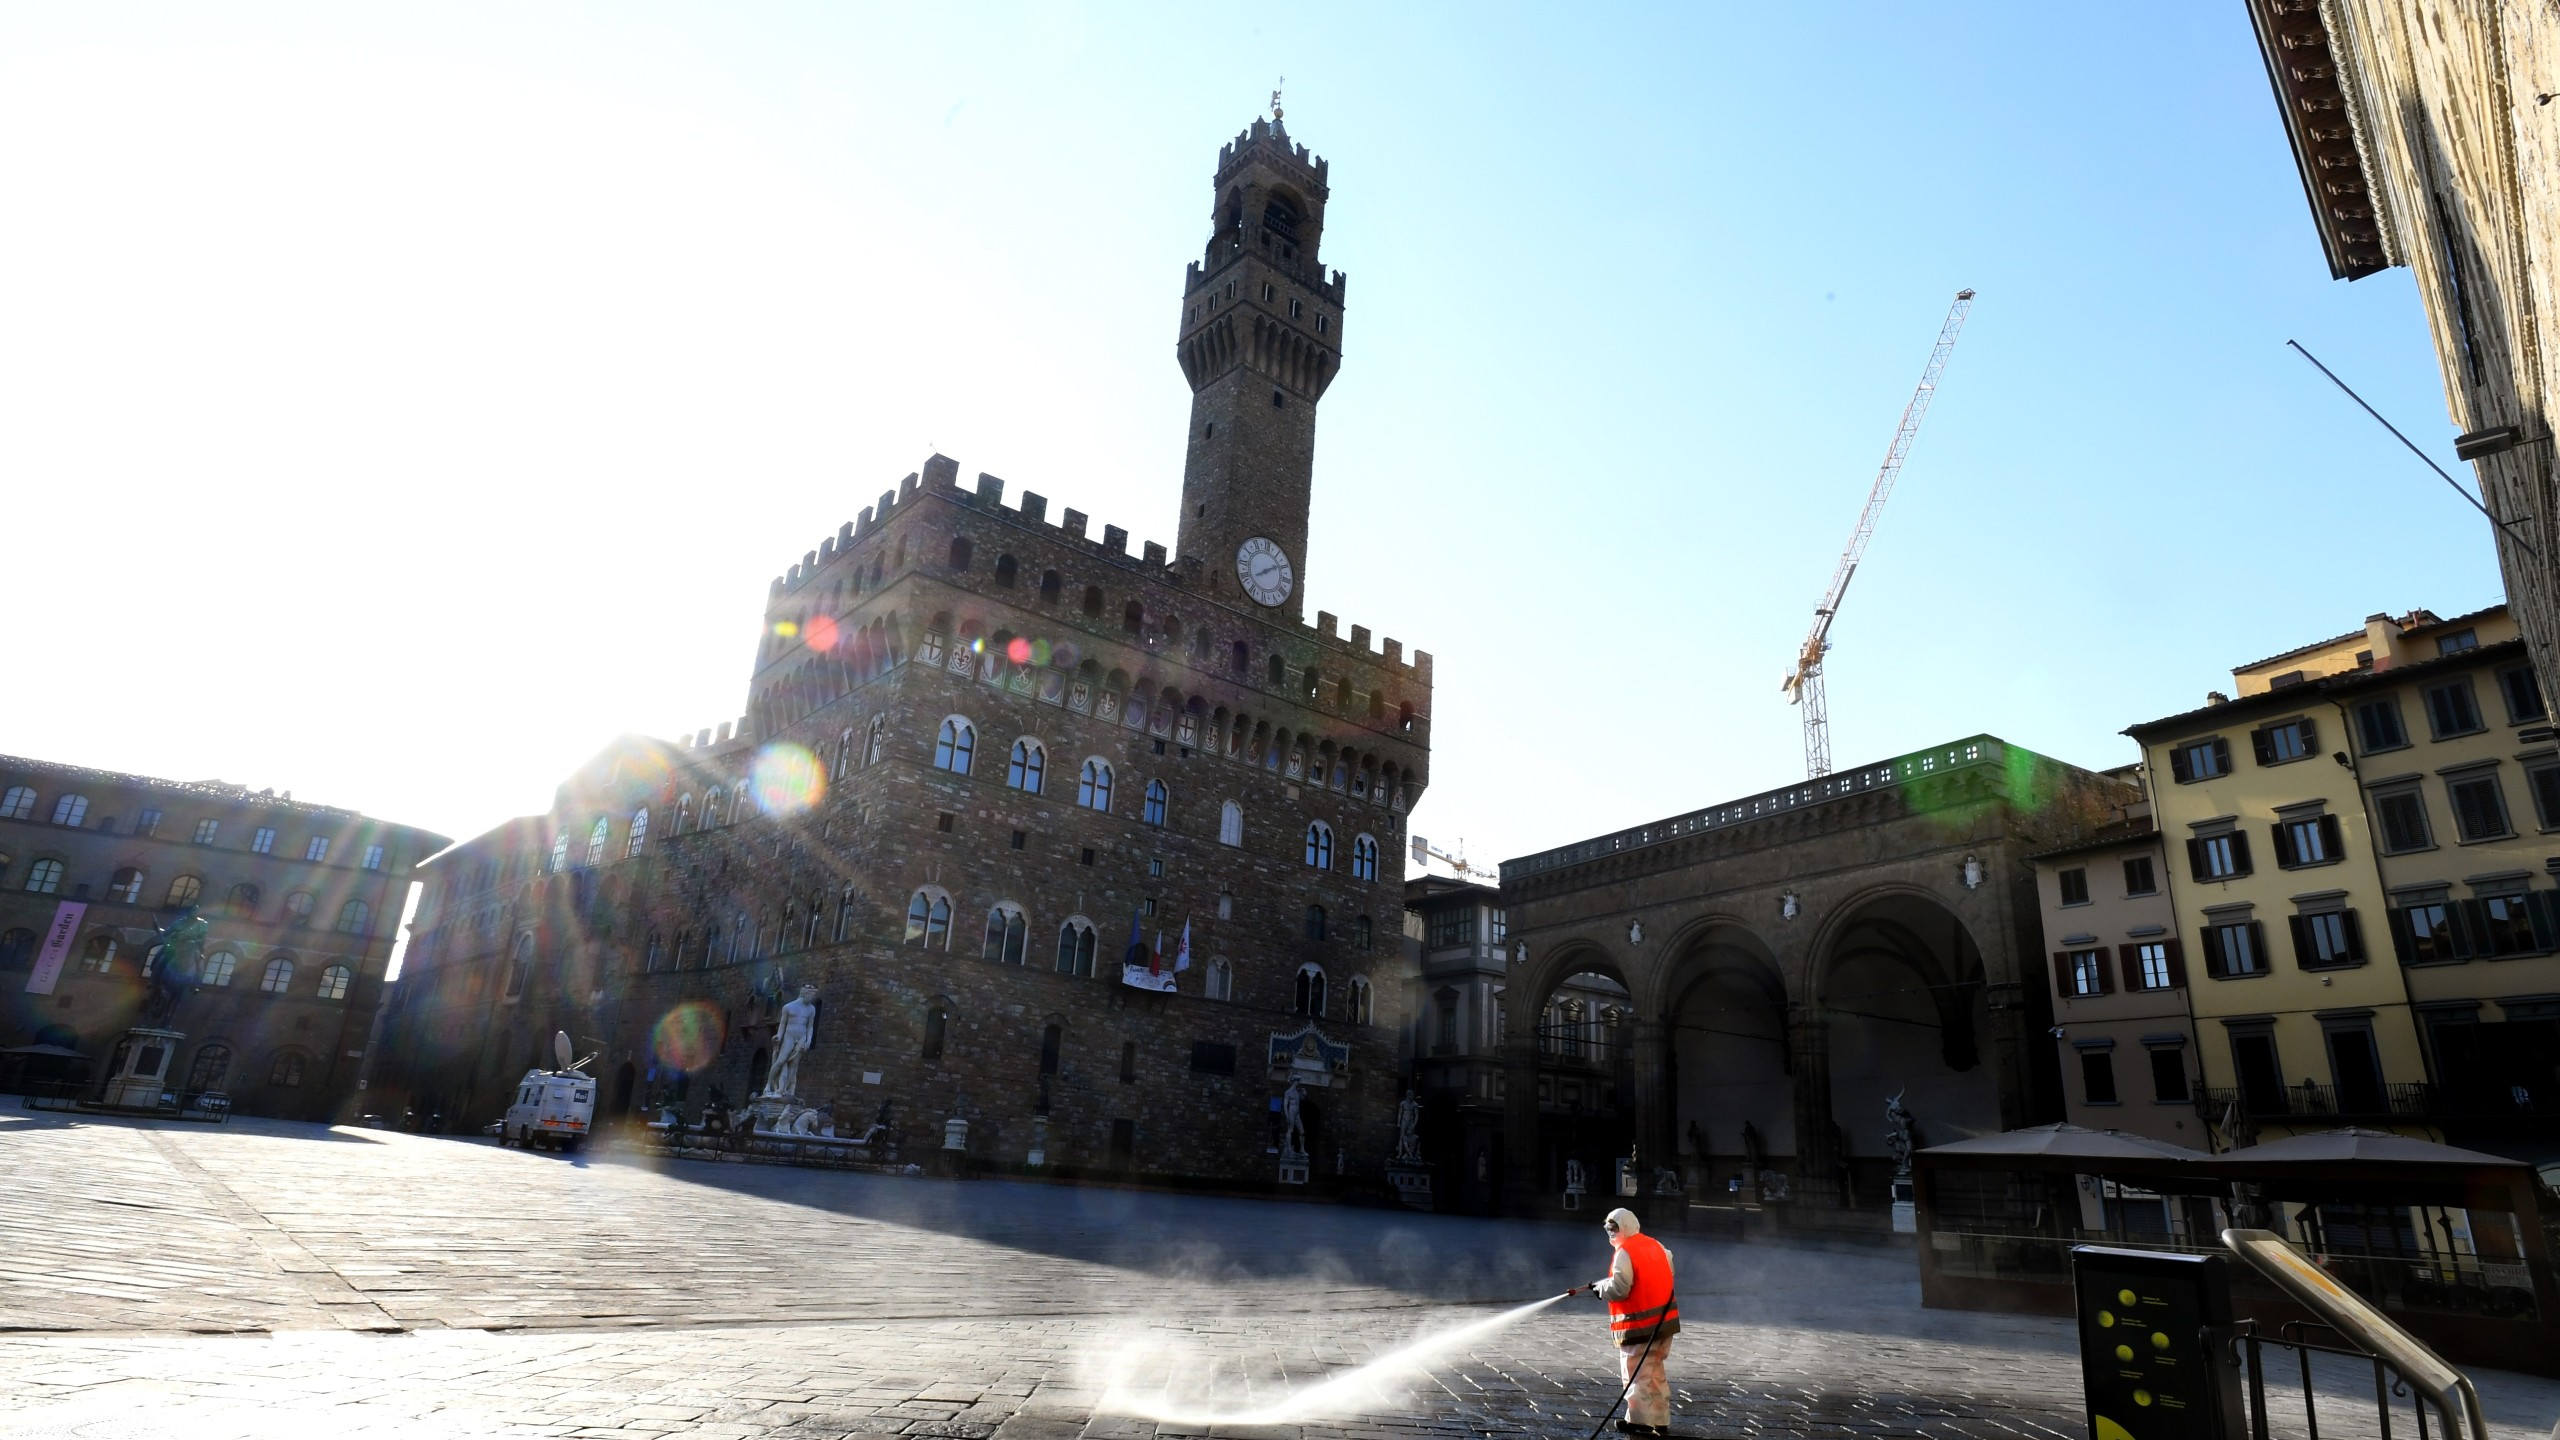 An employee of the municipal company disinfects the street in front of the Palazzo Vecchio in Florence on March 21, 2020. (Carlo Bressan/AFP via Getty Images)